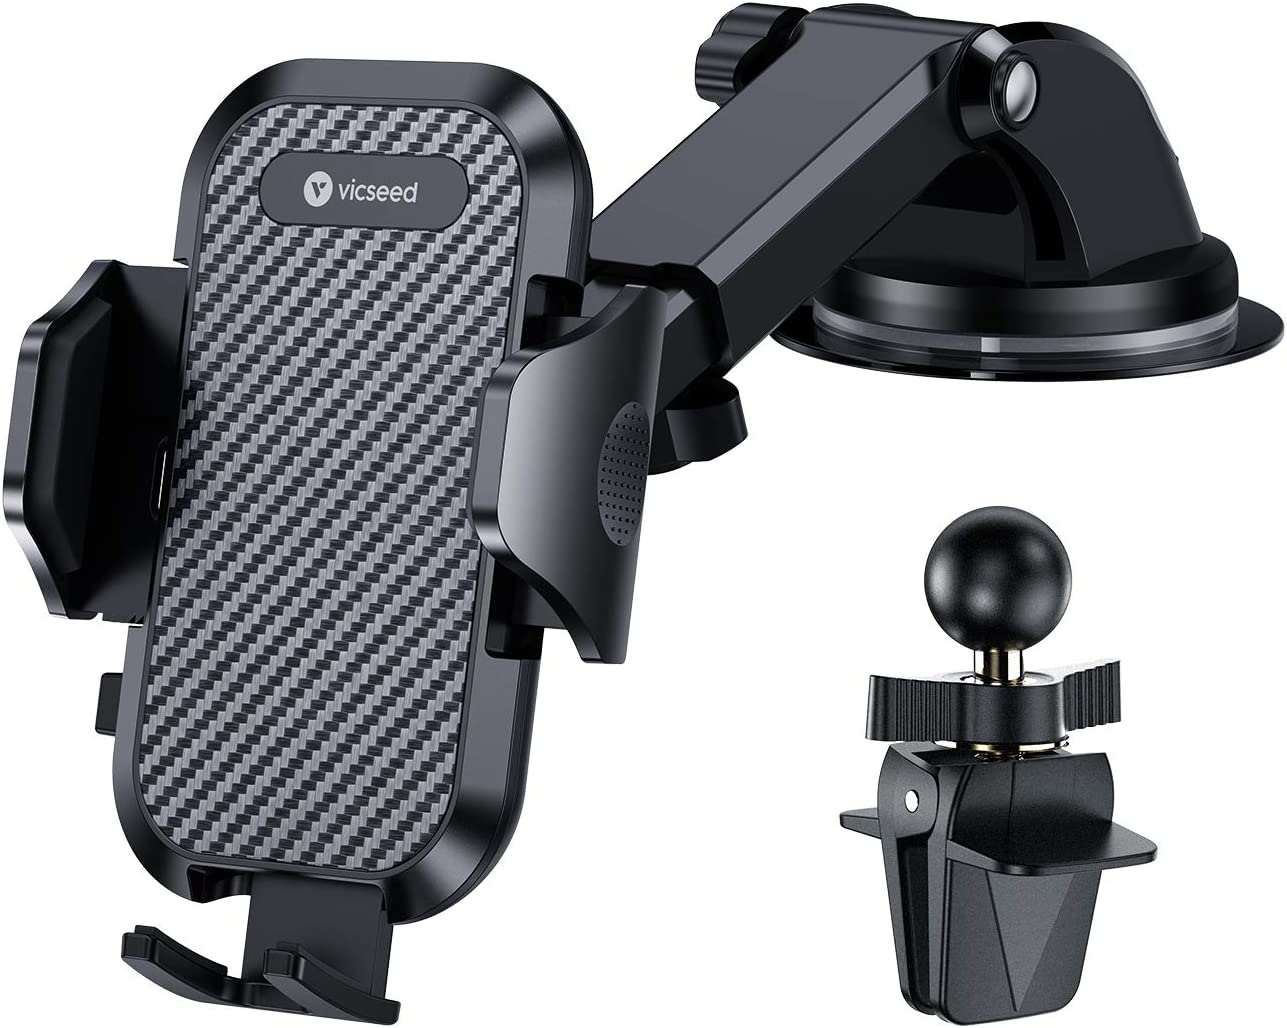 VICSEED Car Phone Mount Car Cell Phone Holder for Car Dashboard Windshield Adjustable Long Arm Strong Suction Universal Cell Phone Car Mount Fit for iPhone 11 Pro X XS Max XR Samsung Galaxy S20 Note10